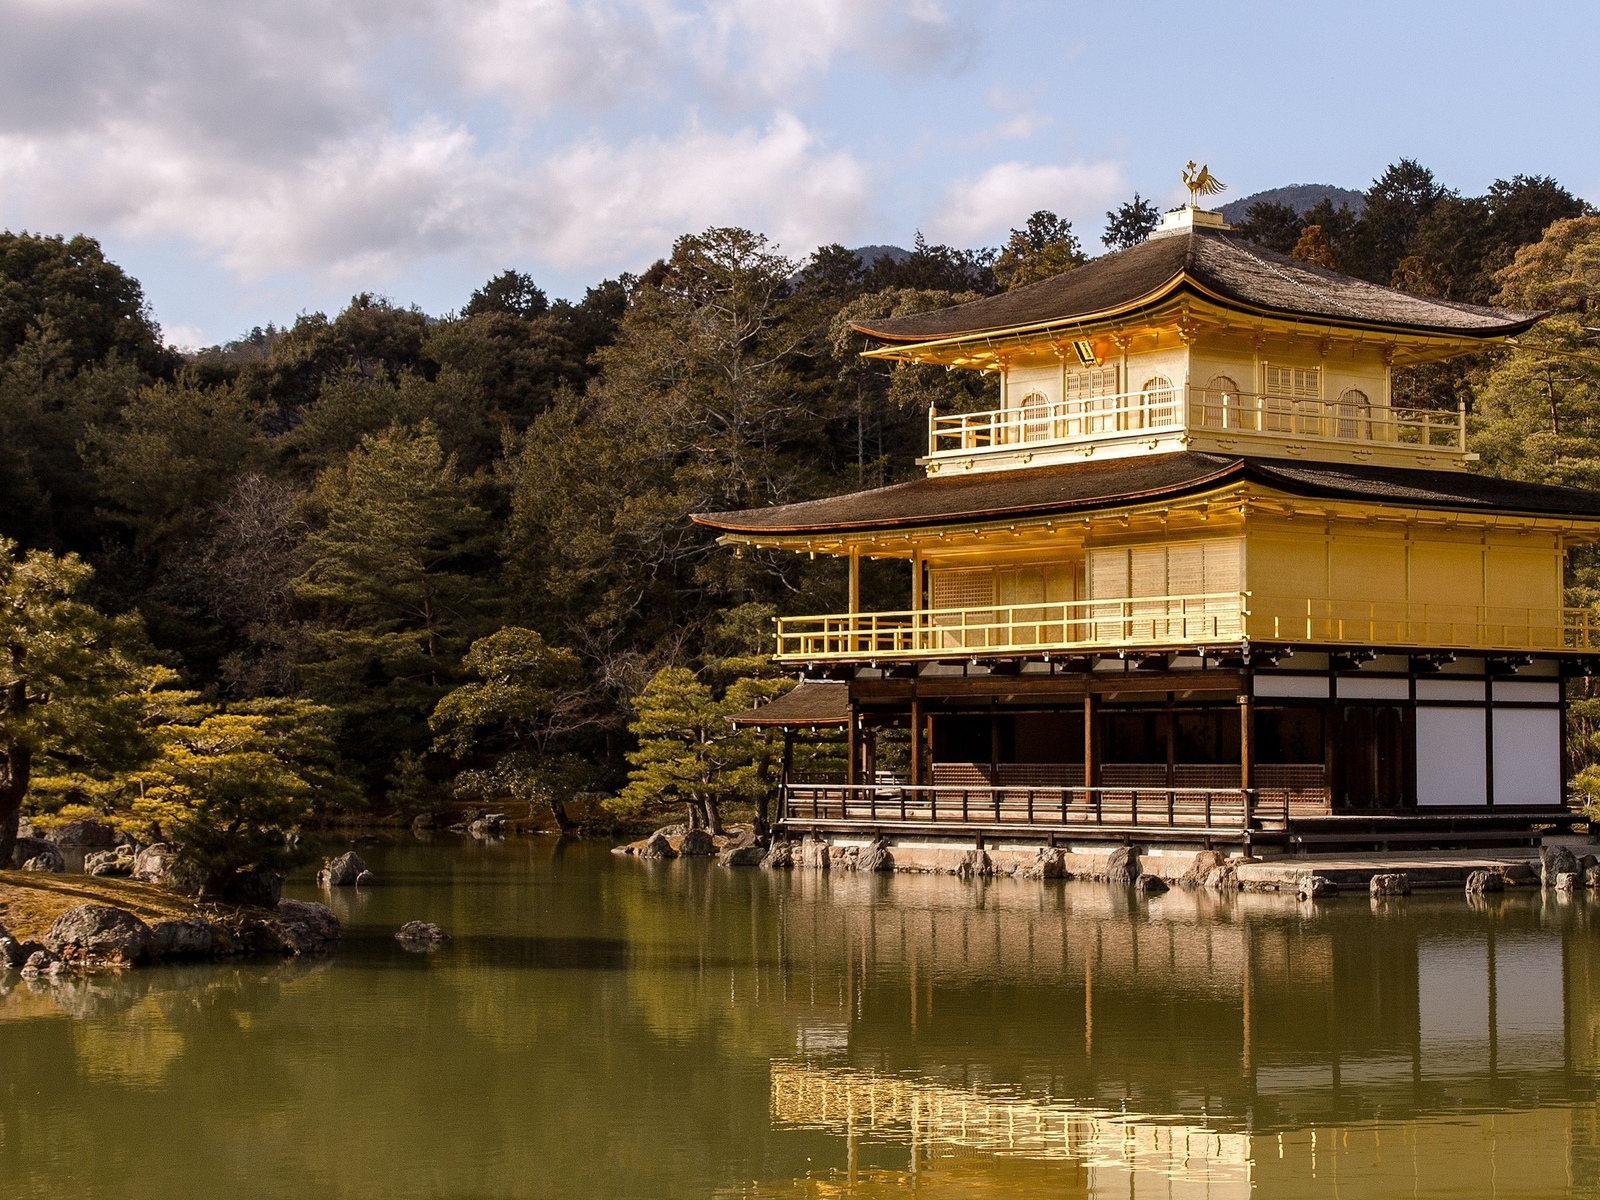 kyoto, the golden pavilion, japan